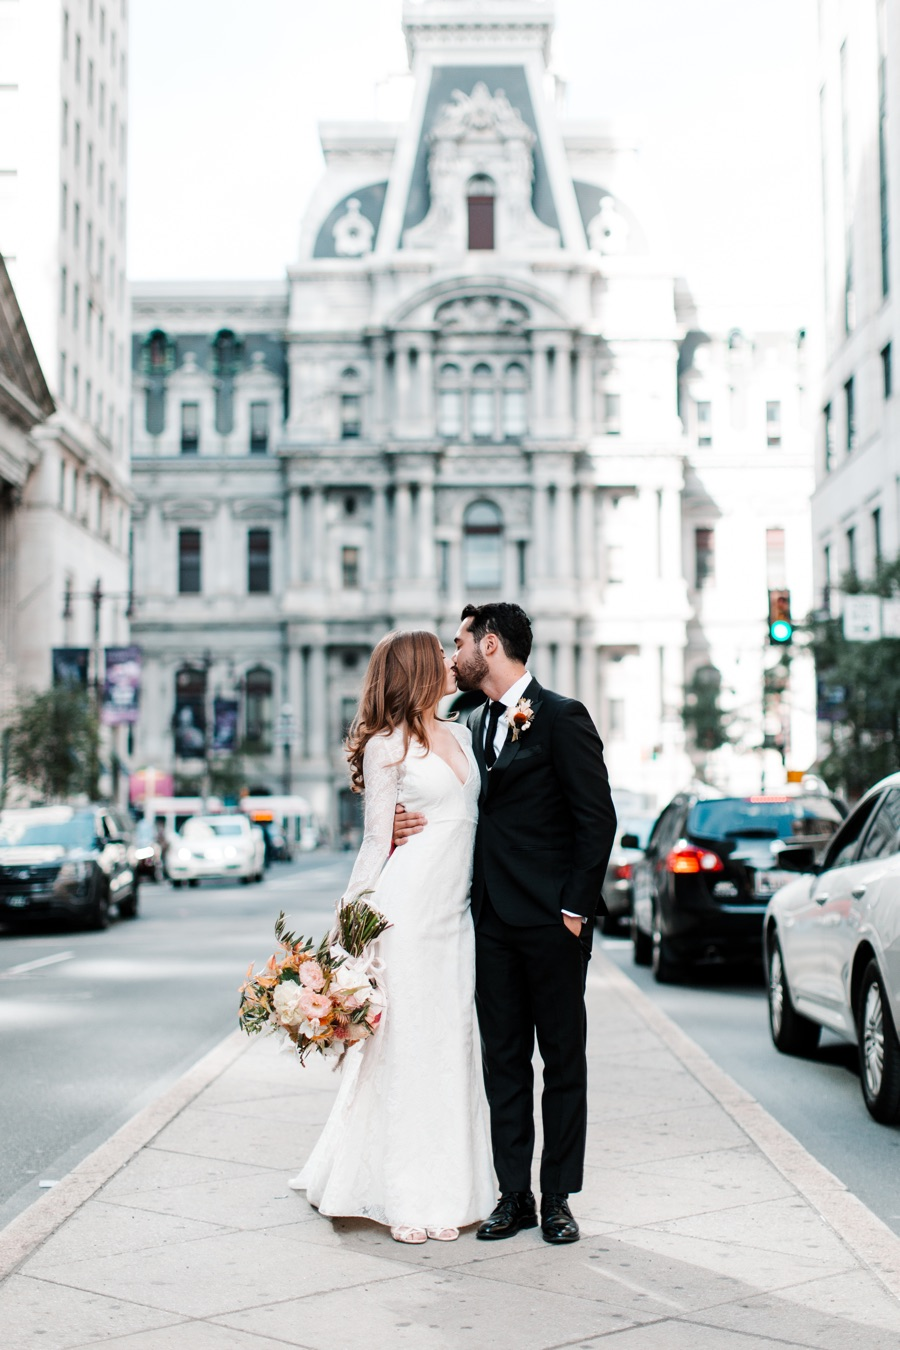 We Love This Chic, Modern (And Totally Philly) Cricket Club Wedding